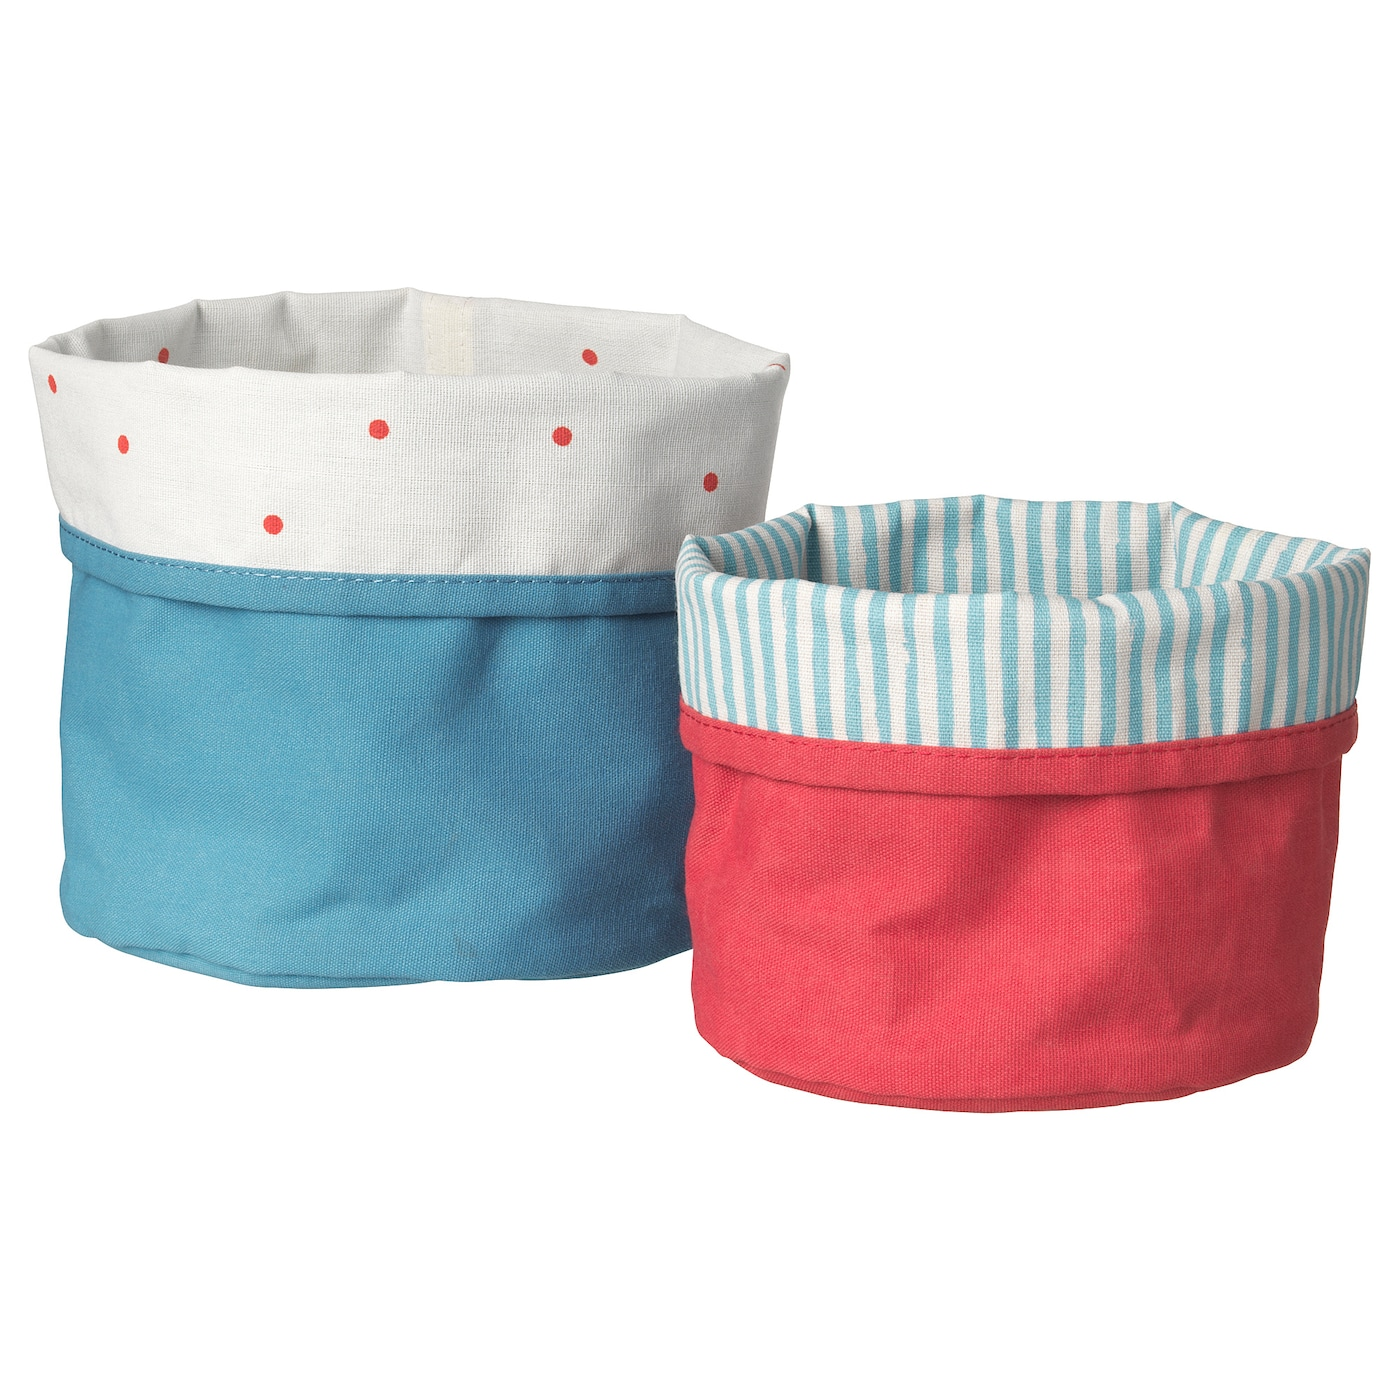 IKEA NÖJSAM basket, set of 2 Can be folded to save space when not in use.